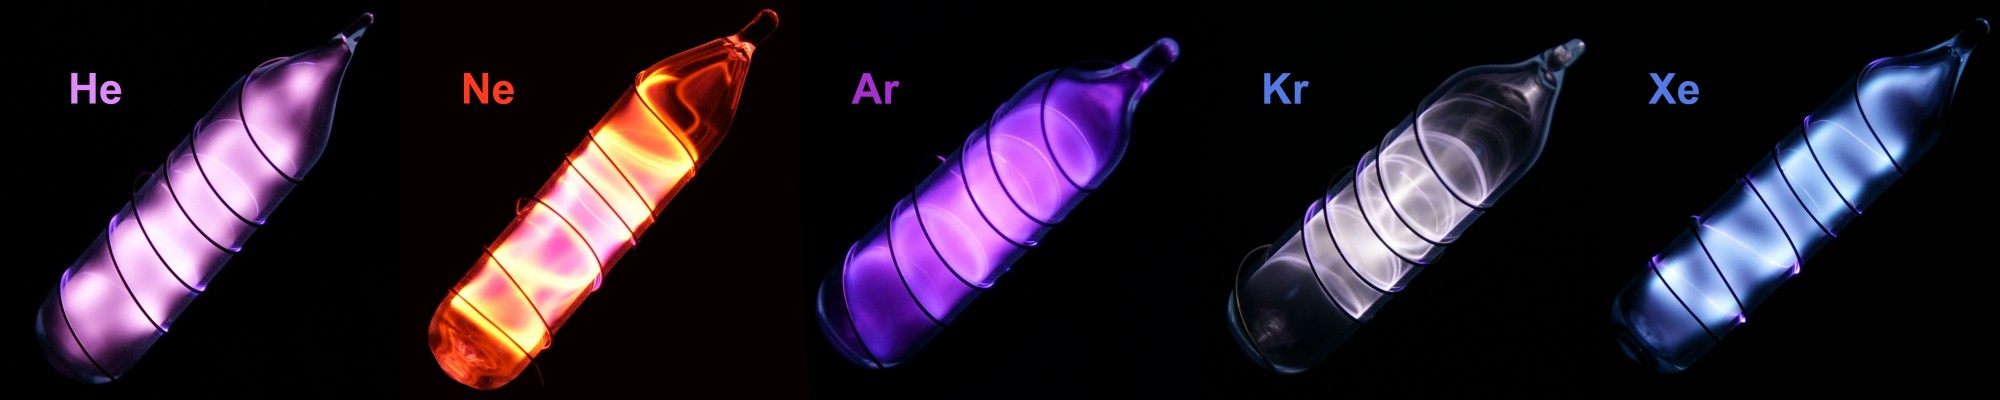 Glowing noble gases